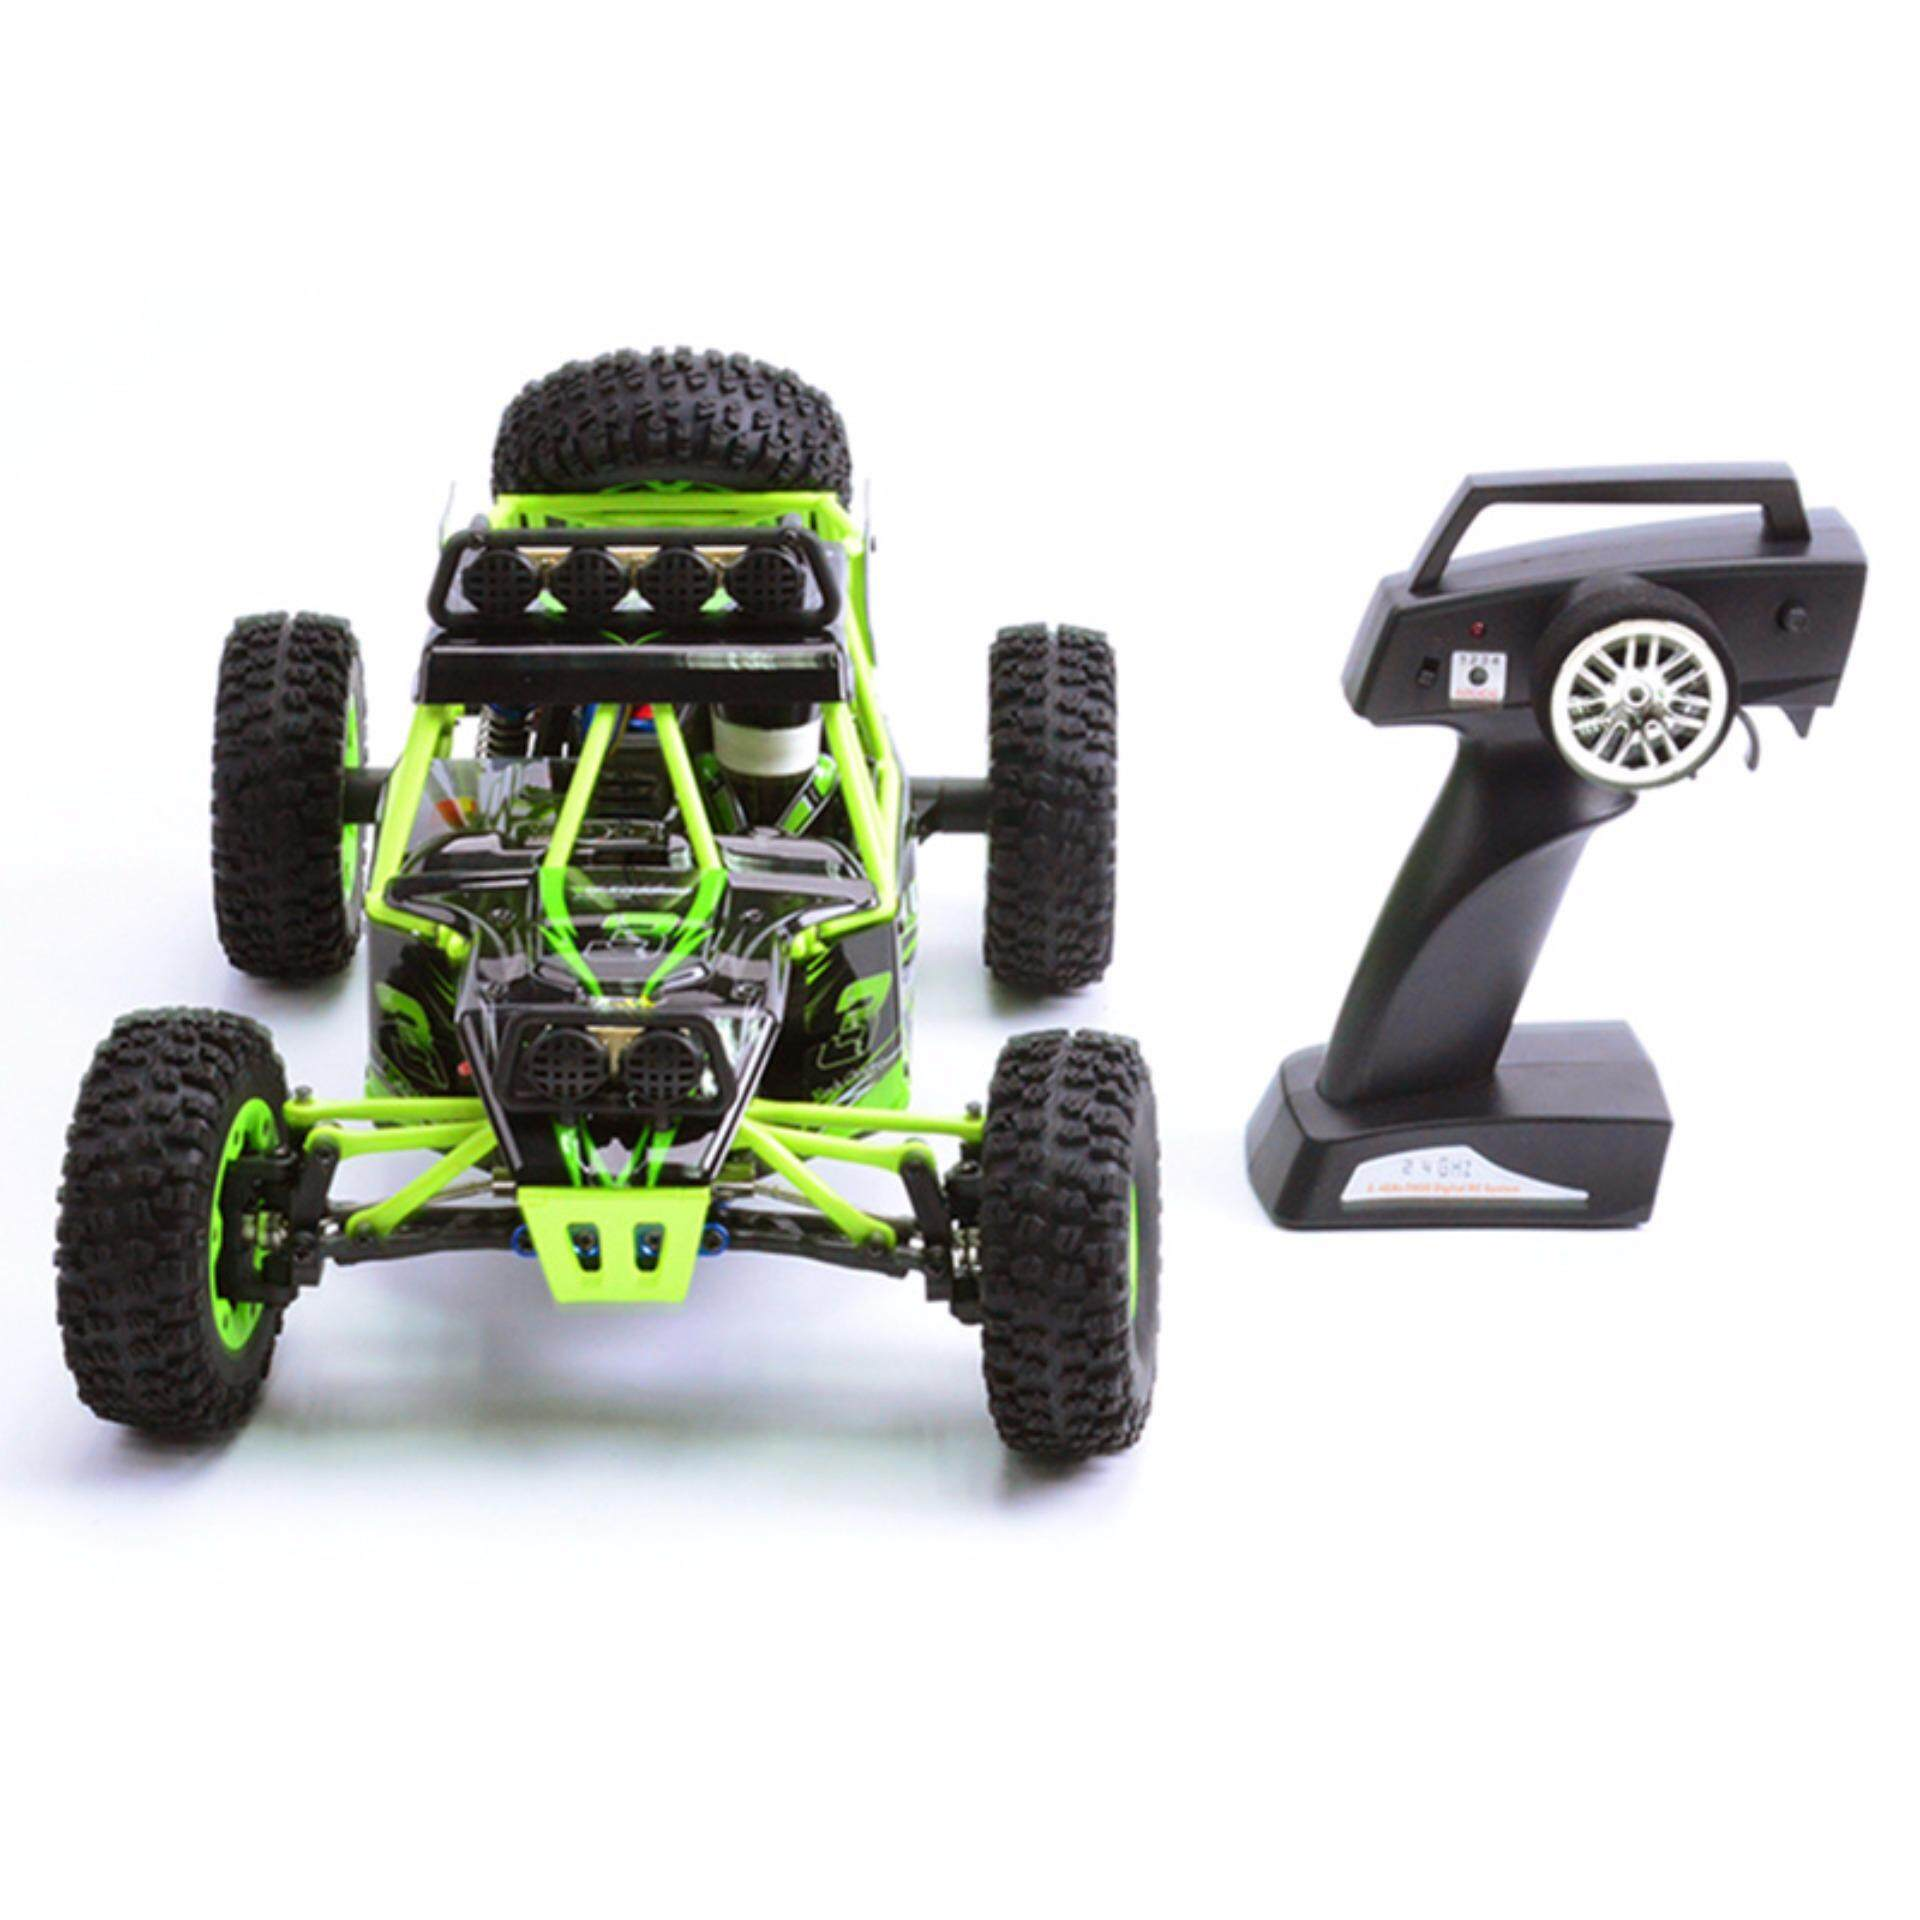 ขาย รถบังคับ Wltoys No 12428 1 12 Scale 2 4Ghz 4Wd Off Road Vehicle With Led Light ใหม่